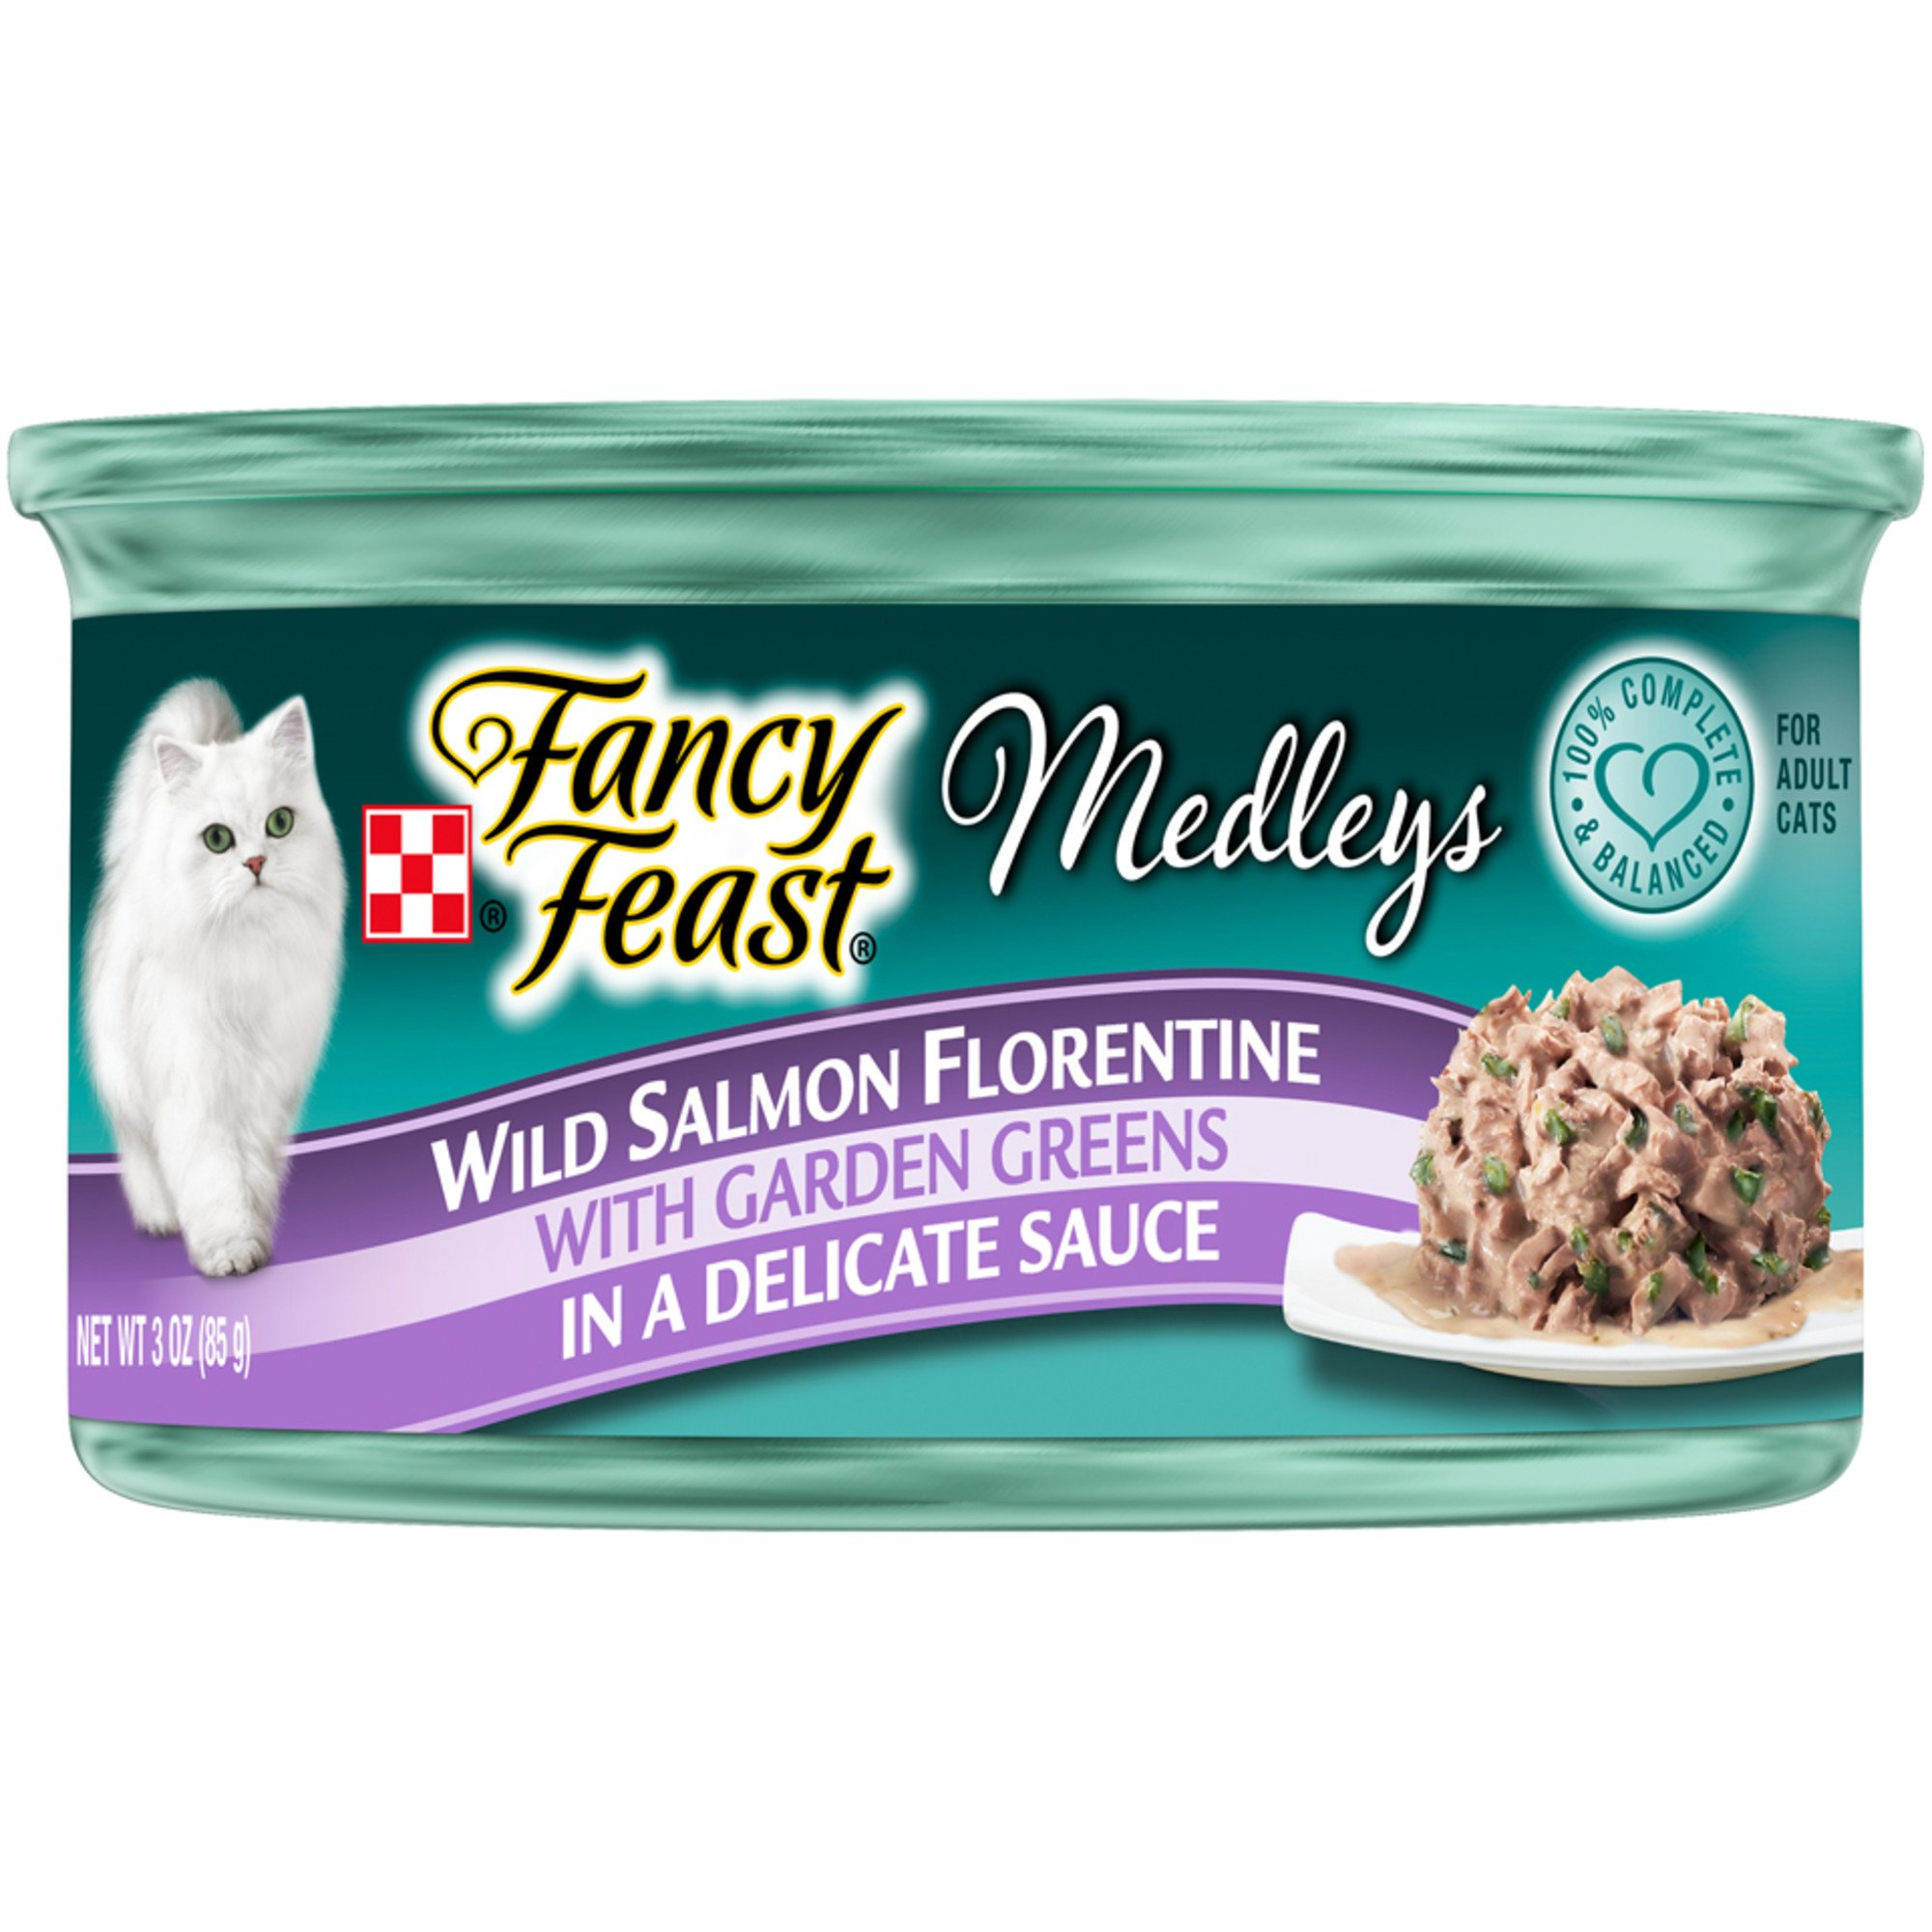 Purina Fancy Feast Medleys Wild Salmon Florentine With Garden Greens in a Delicate Sauce Adult Wet Cat Food, 3 oz., Case of 24